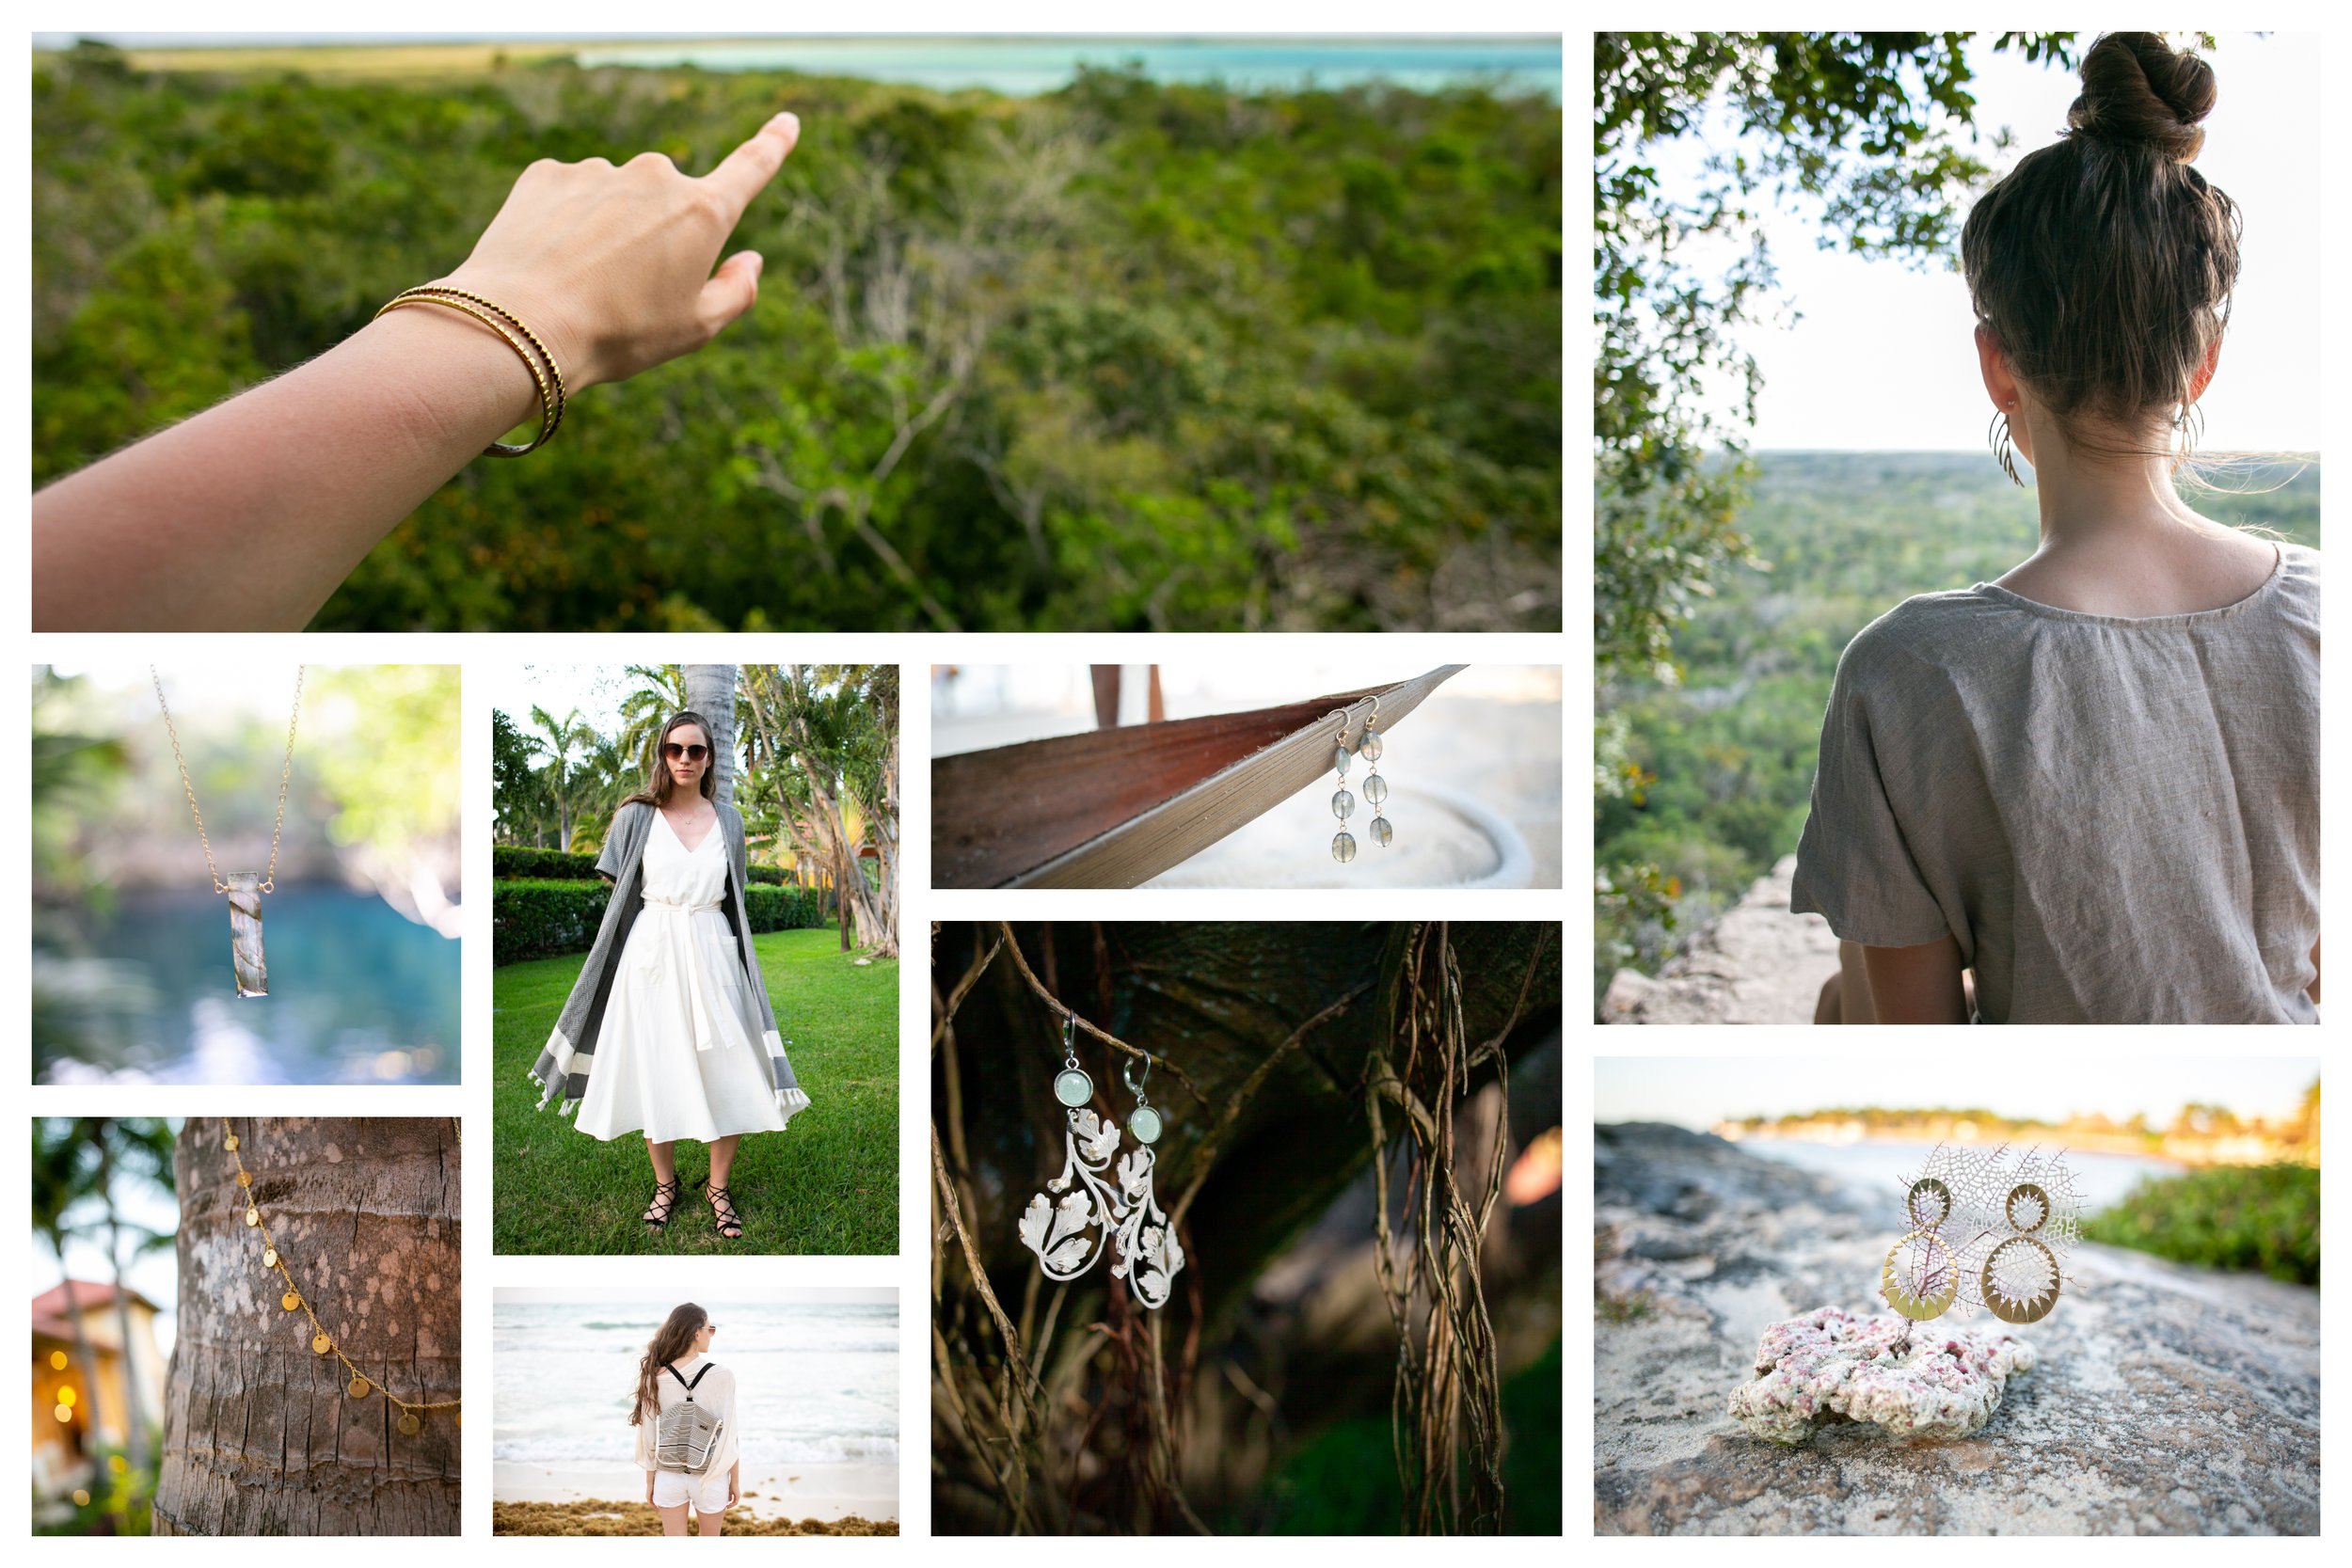 Travel Lifestyle Photography Collective